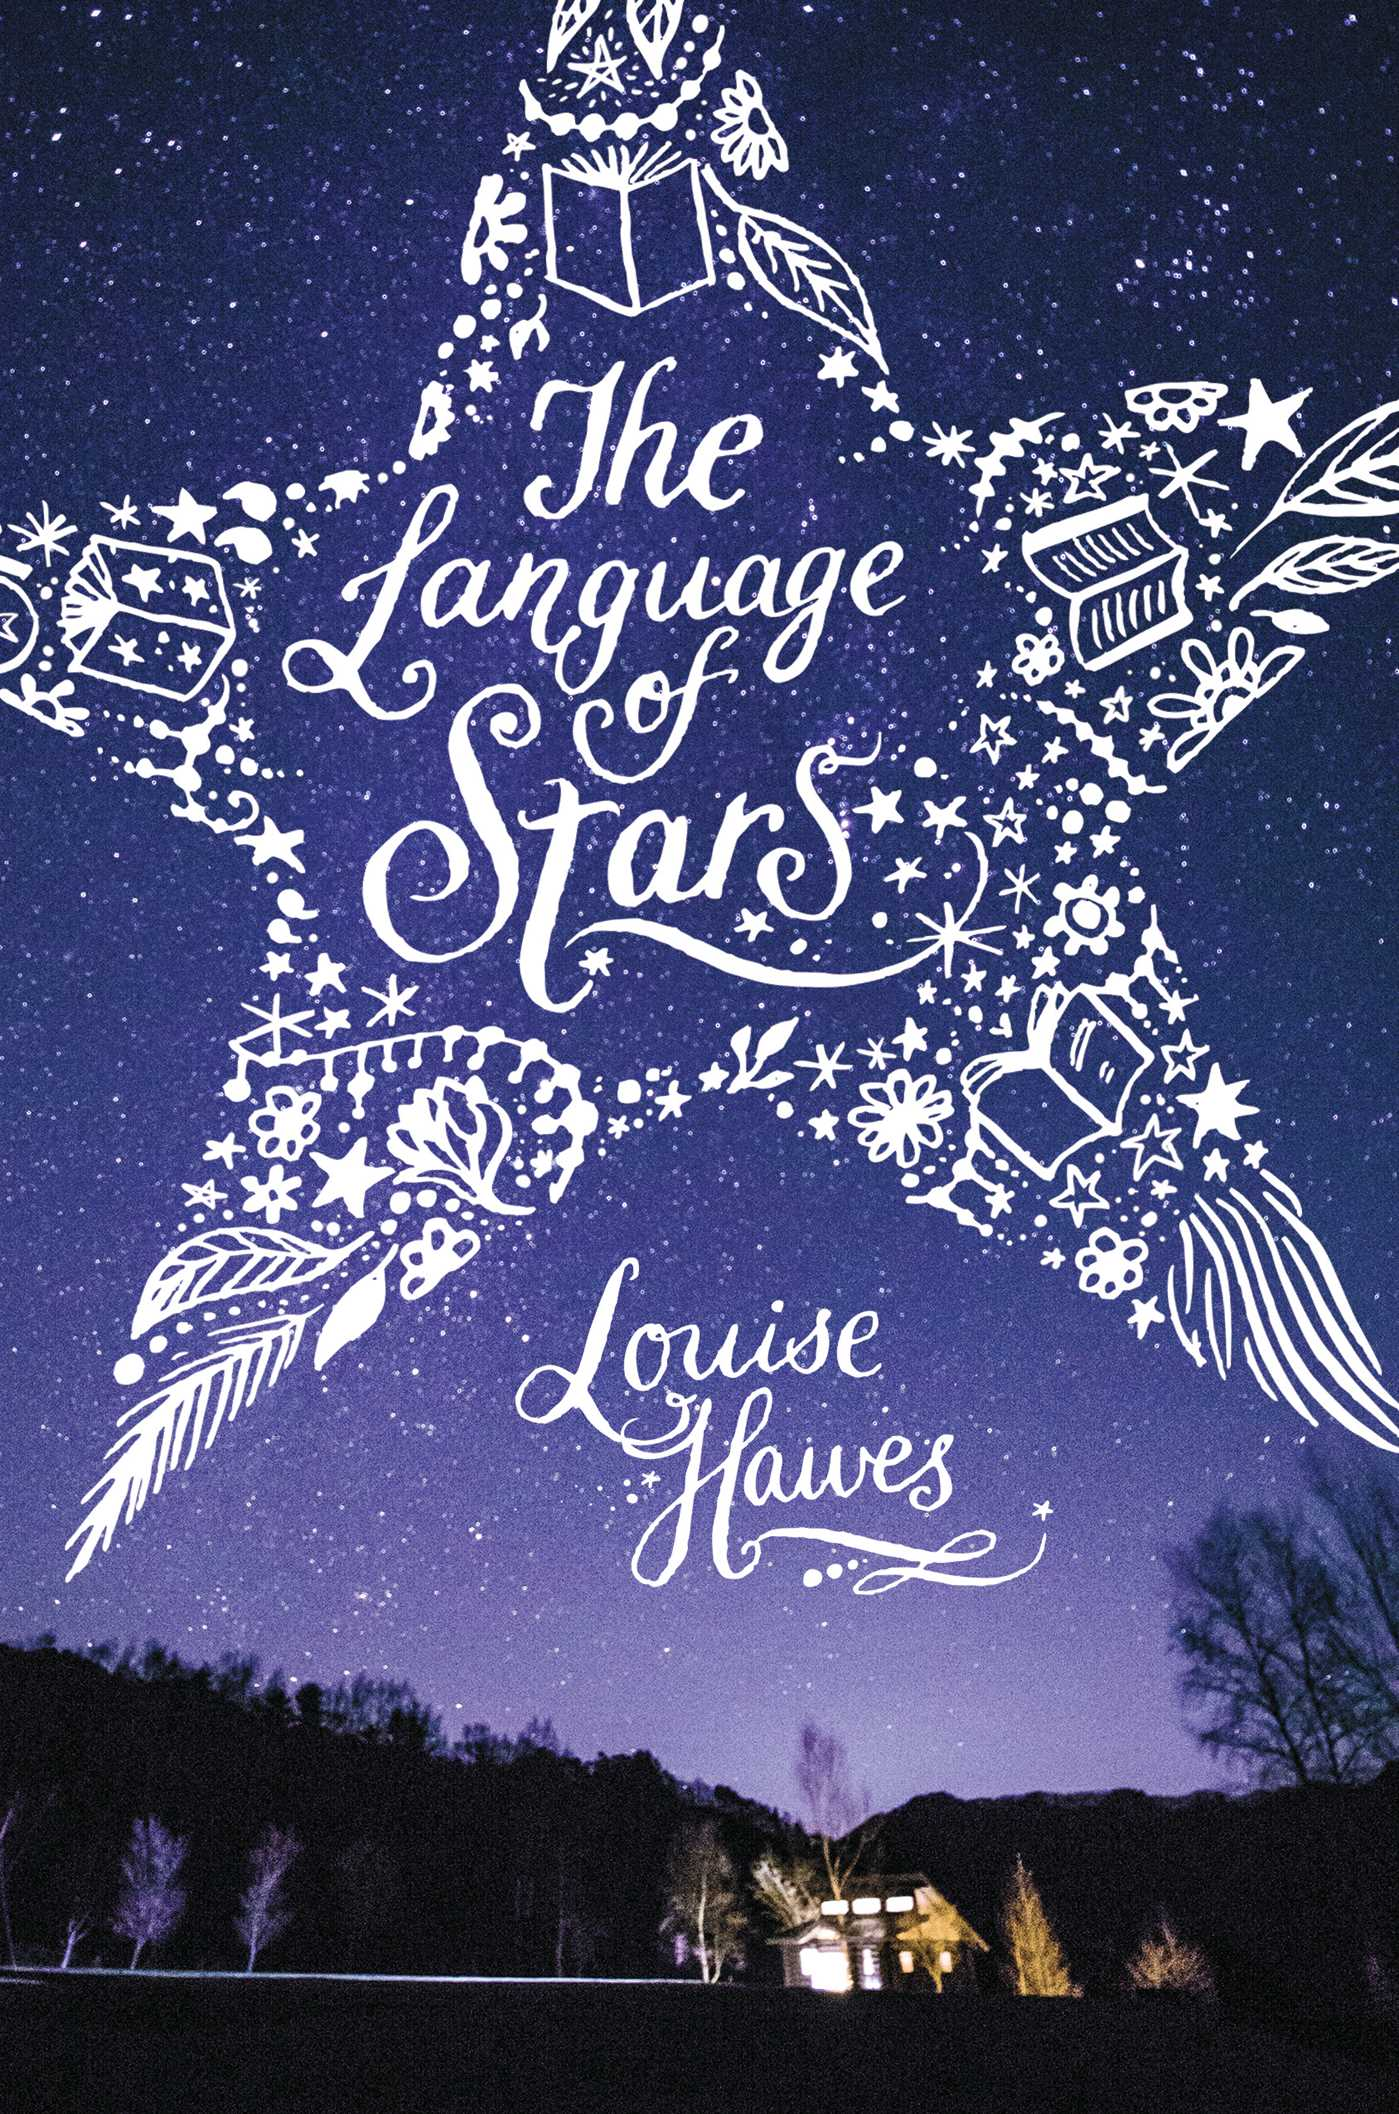 louise hawes book